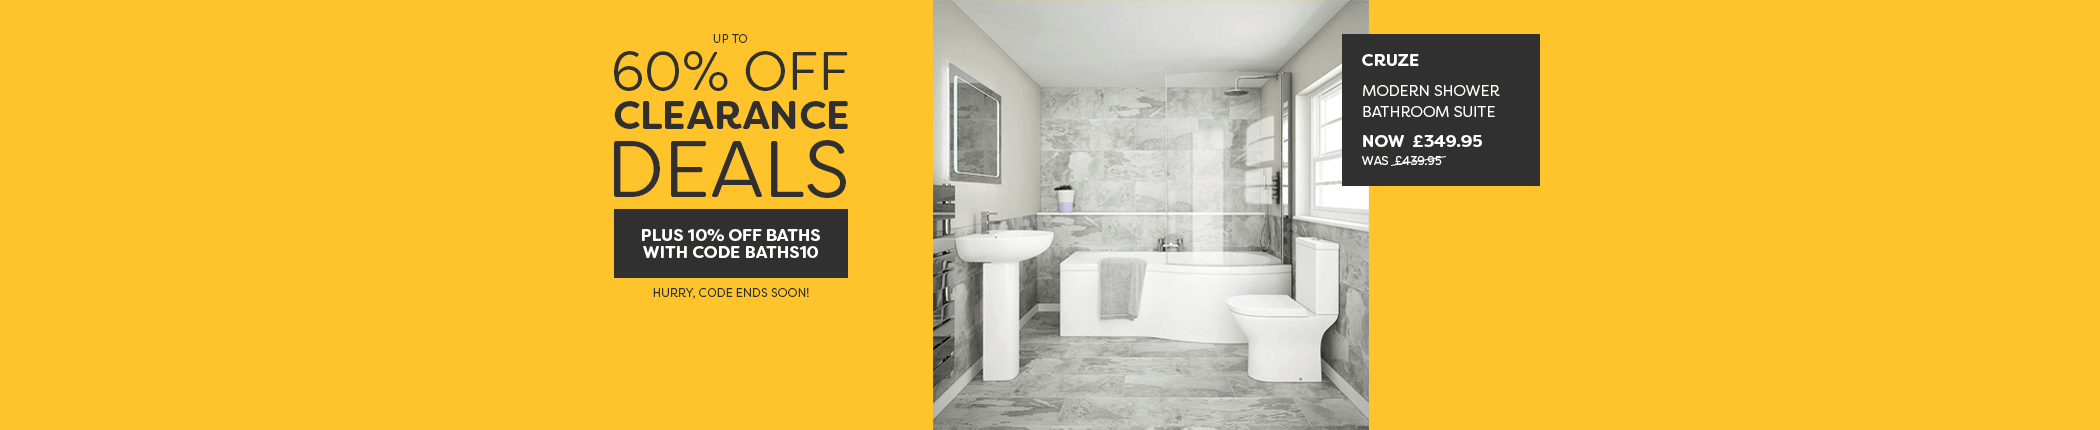 clearance-deals-10-off-baths-cruze-modern-shower-bathroom-suite-countdown-feb18-hbnr